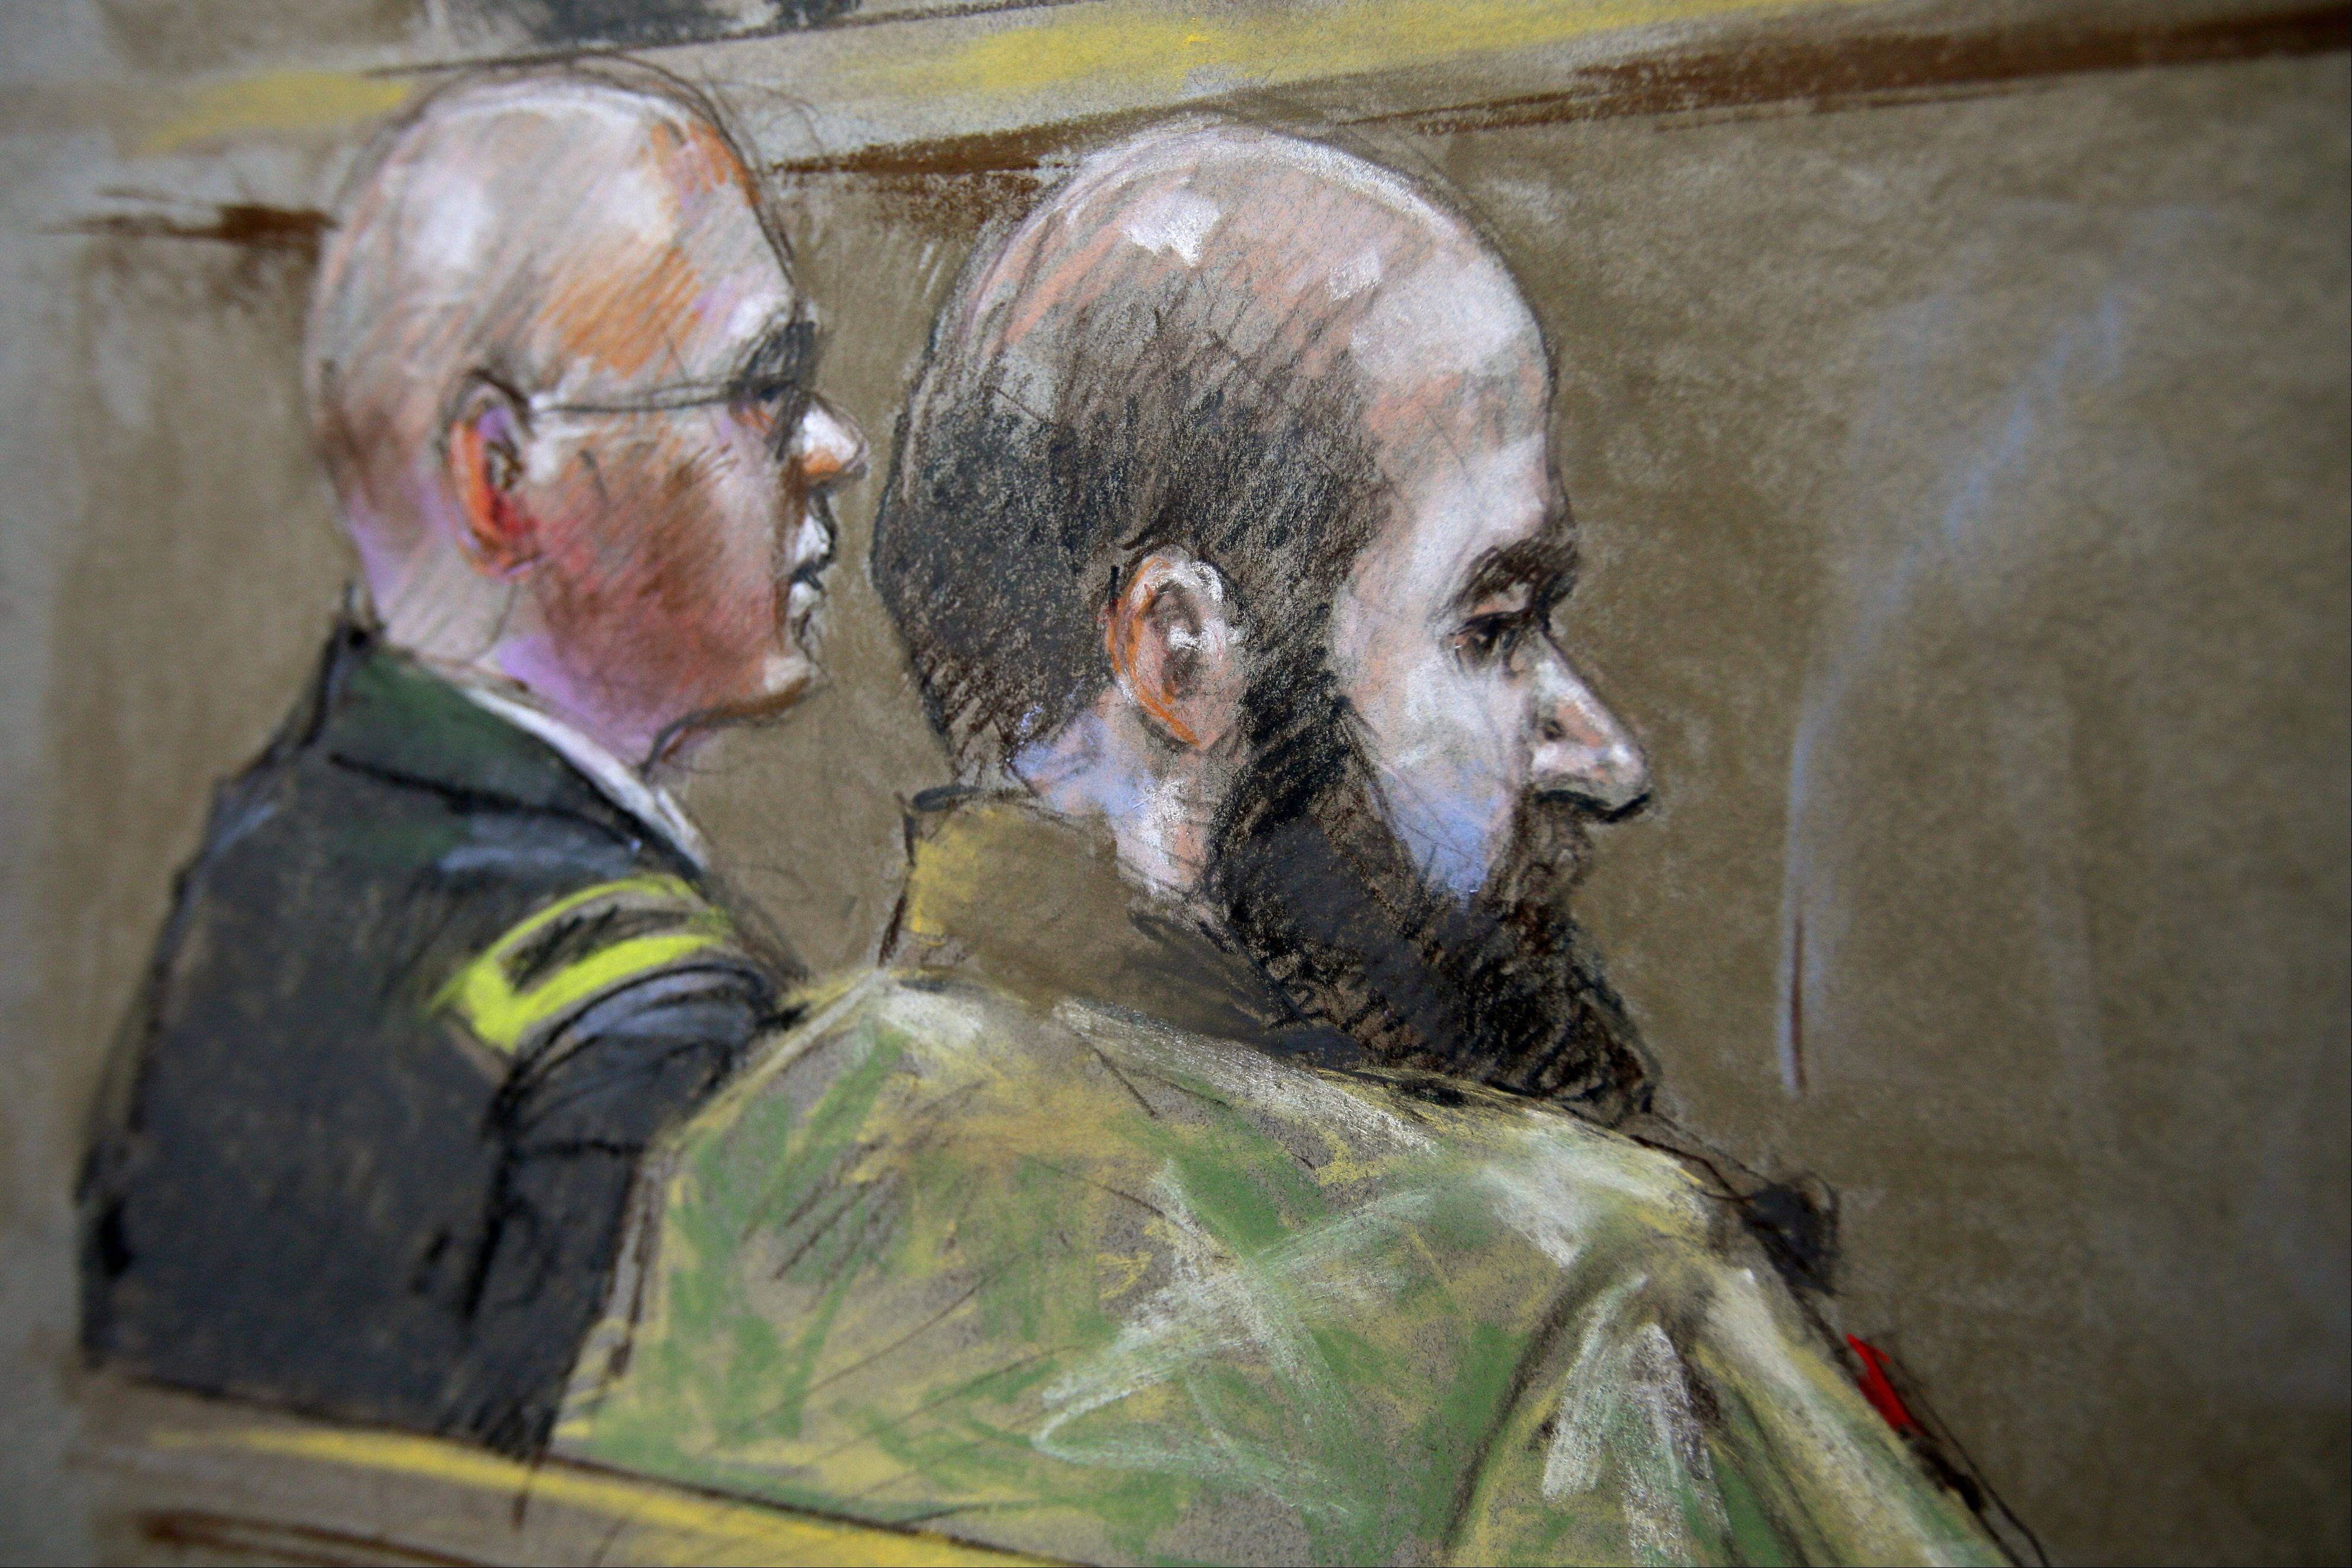 In this courtroom sketch of court proceedings Wednesday in the court martial of U.S. Army Maj. Nidal Malik Hasan, Hasan, right, and his defense attorney, Lt. Col. Kris Poppe, left, are shown in Fort Hood, Texas. Hasan rested his case Wednesday without calling any witnesses or testifying in his own defense. Hasan is accused of killing 13 people and wounding more than 30 others at the Texas military base in November 2009.